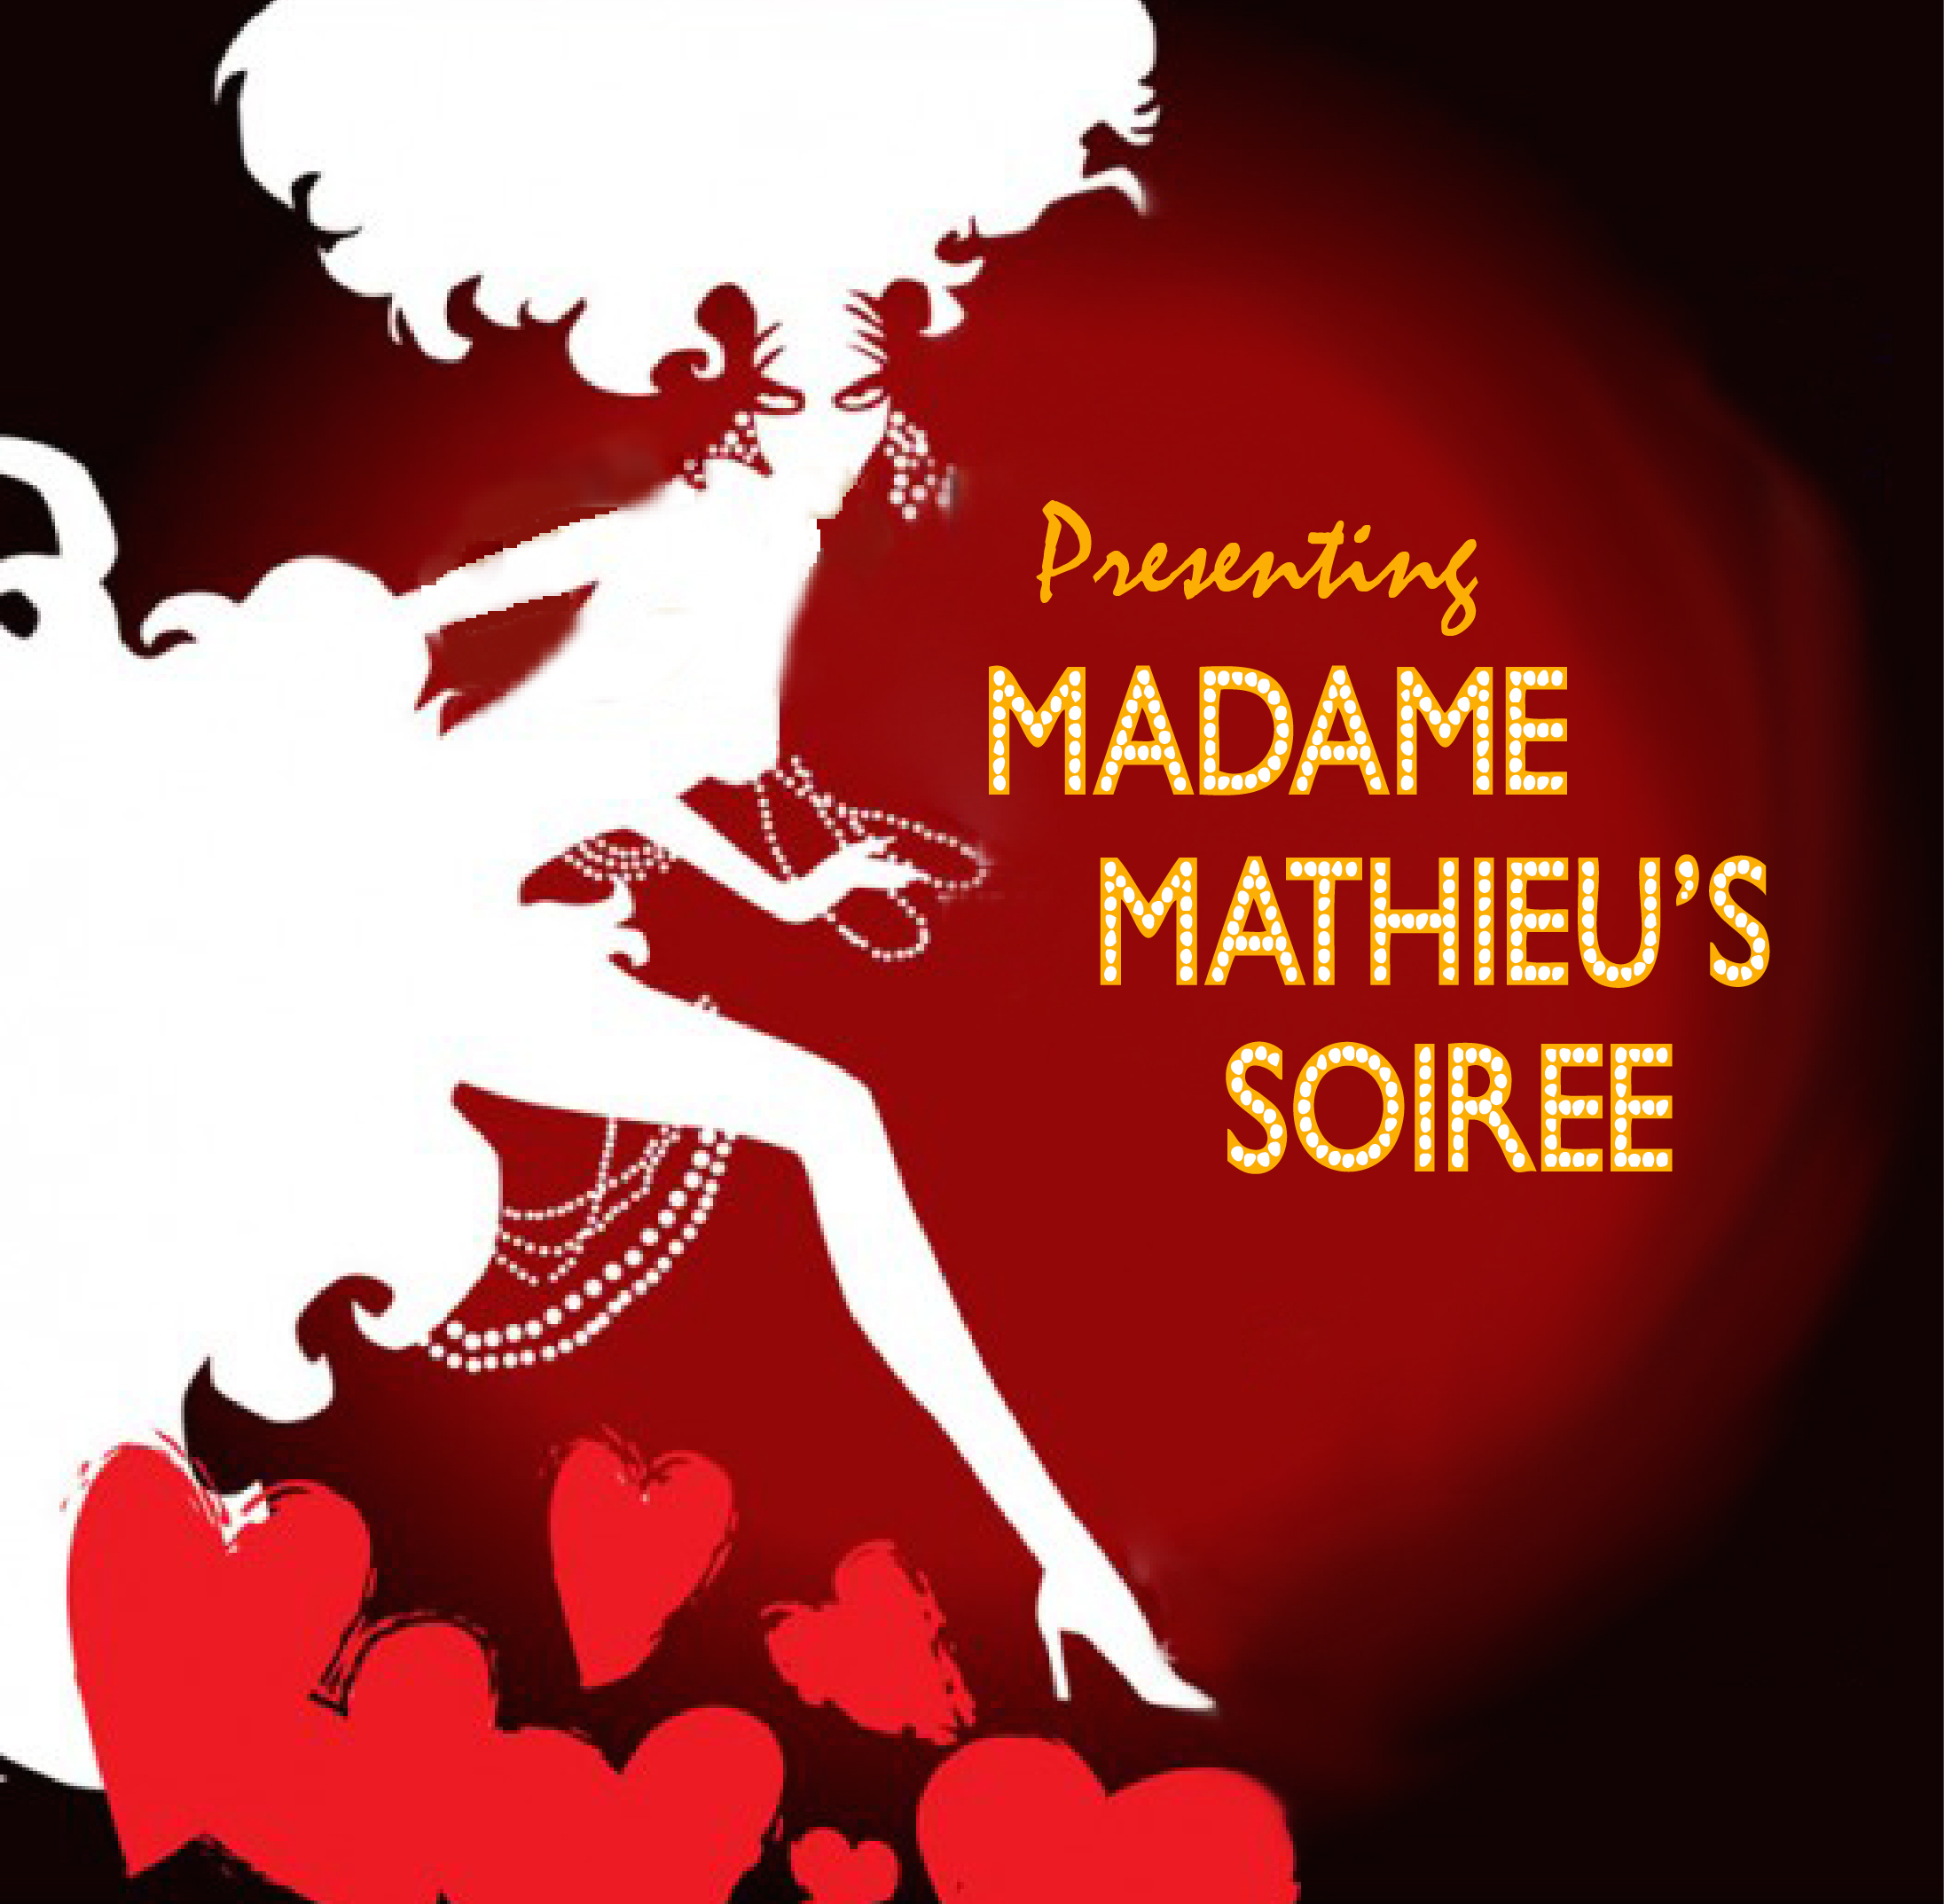 MADAME MATHIEU'S SOIREE